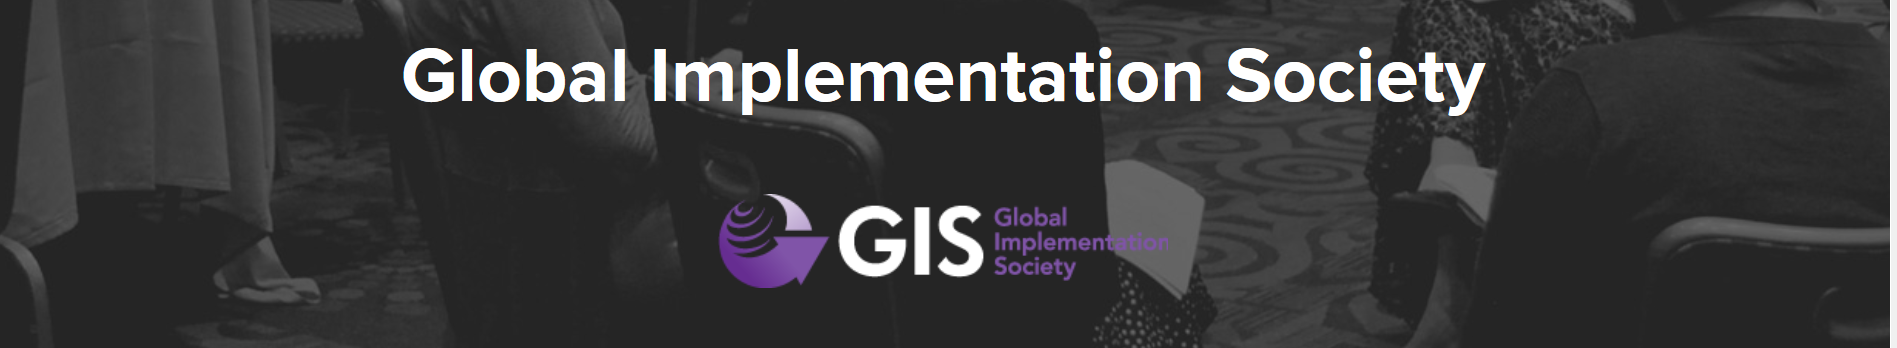 GIS Membership Purchase